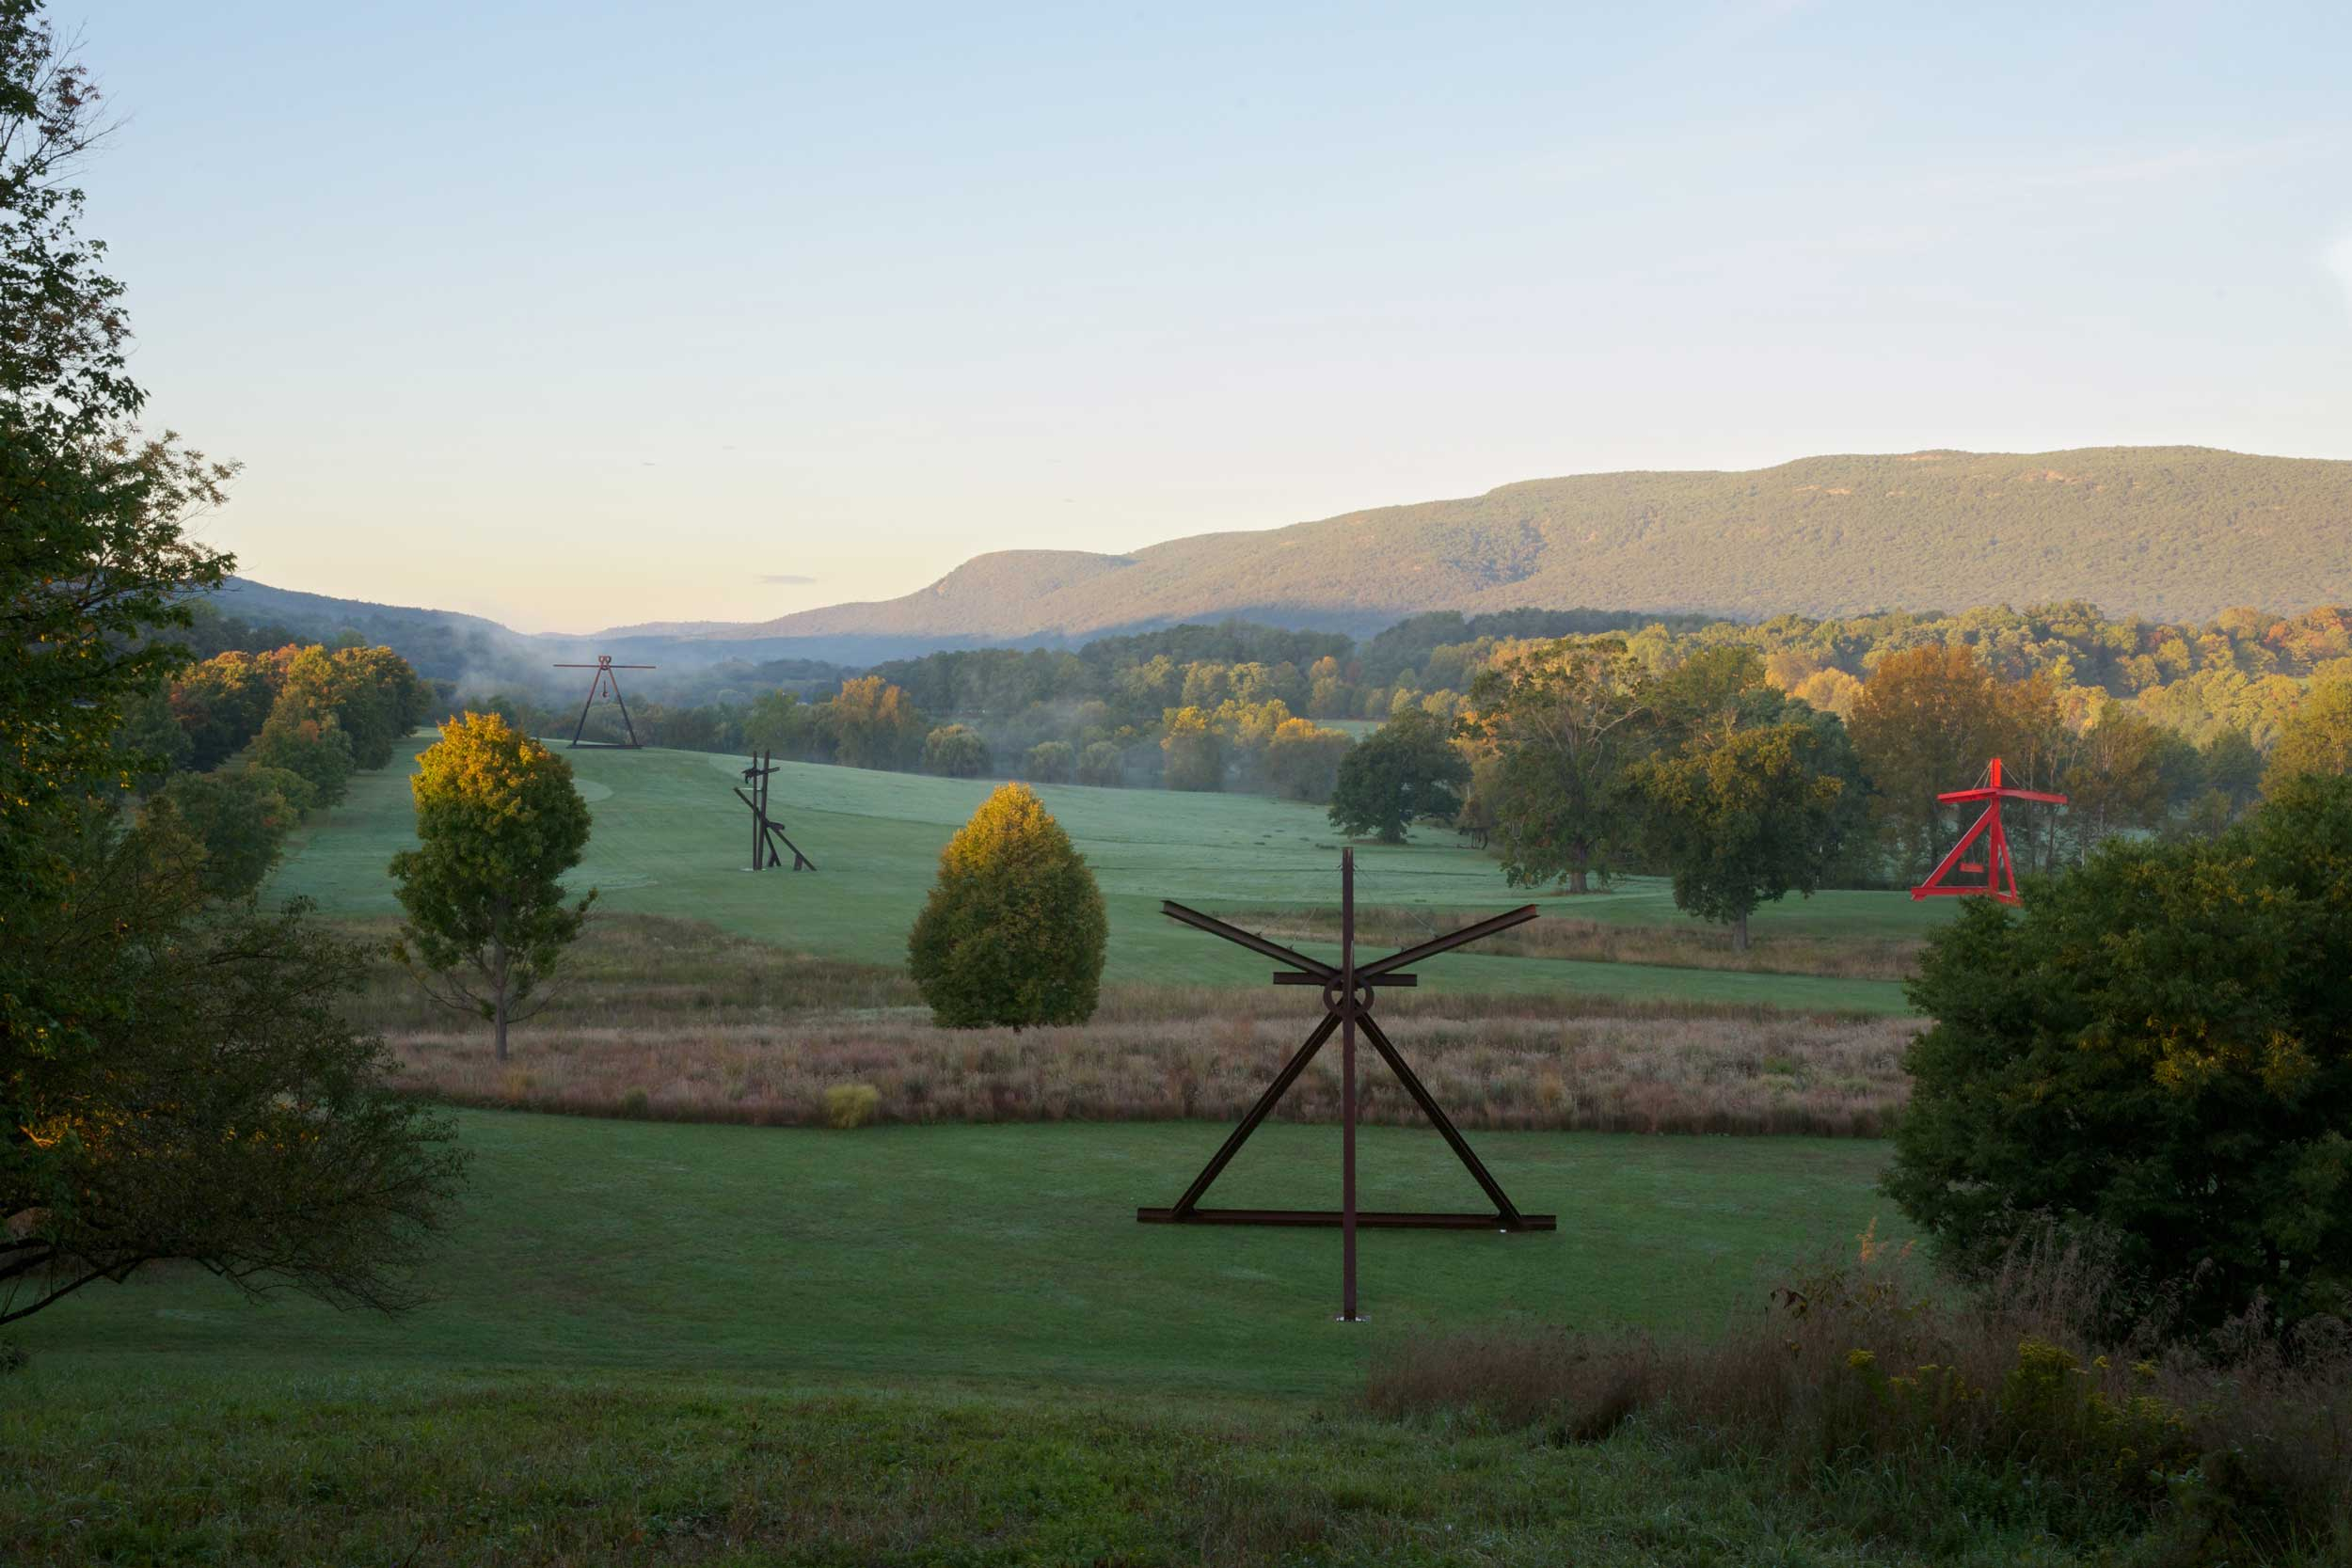 View of the South Fields, all works by Mark di Suvero. Background:  Pyramidian , 1987/1998;  Jeanne , 2014–2015;  Mon Père, Mon Père , 1973–75;  Mother Peace , 1969–70. Below: Alexander Liberman,  Iliad , 1974-1976 (left); Mark di Suvero,  Frog Legs , 2002,  Mozart's Birthday , 1989, and  Neruda's Gate , 2005 (right). Photo credit: Jerry L. Thompson.